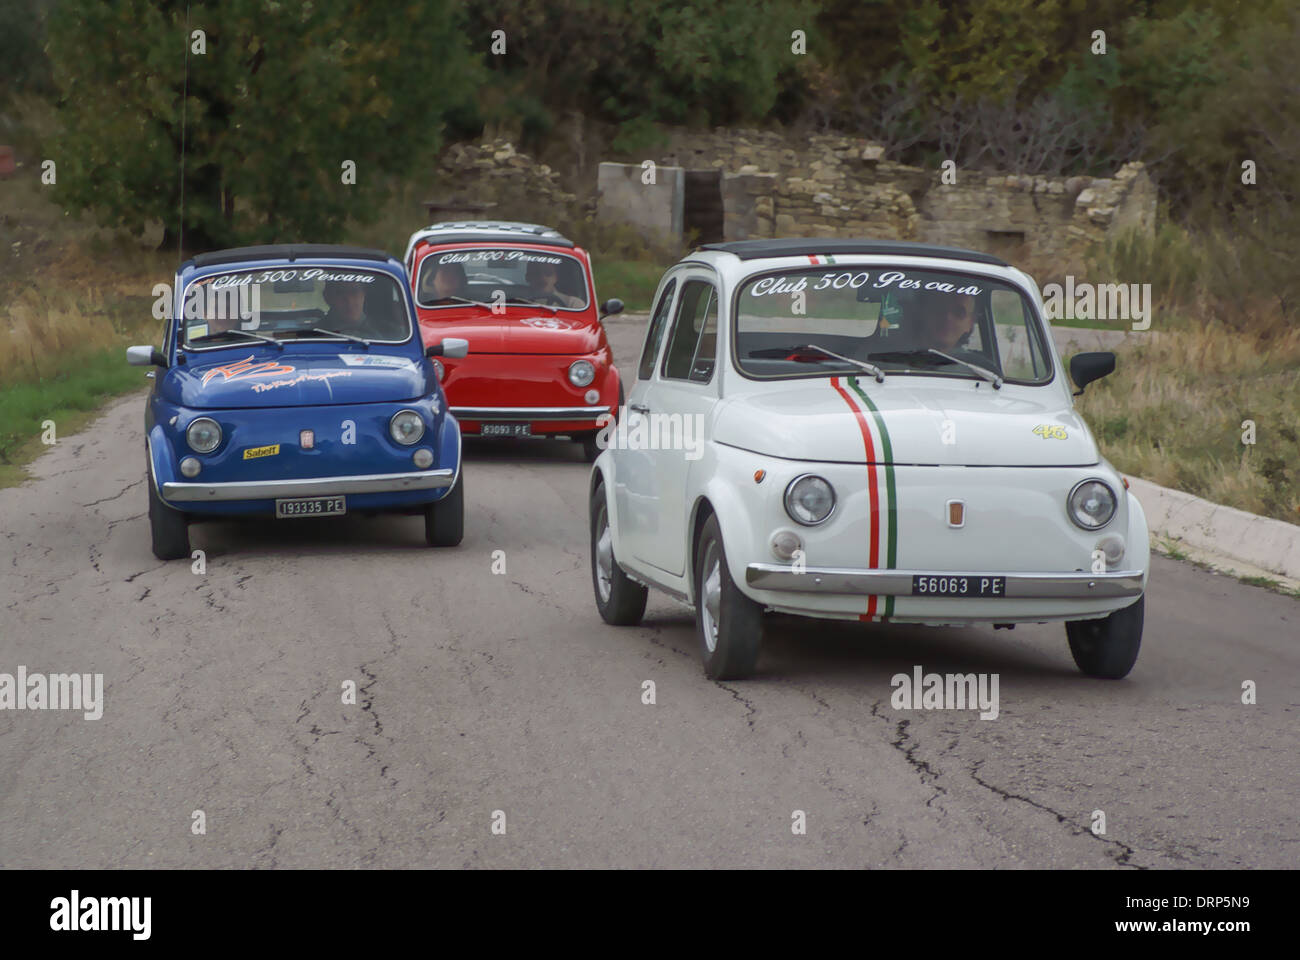 fiat 500 cars vintage cars classic fiat cars customised stock photo royalty free image. Black Bedroom Furniture Sets. Home Design Ideas